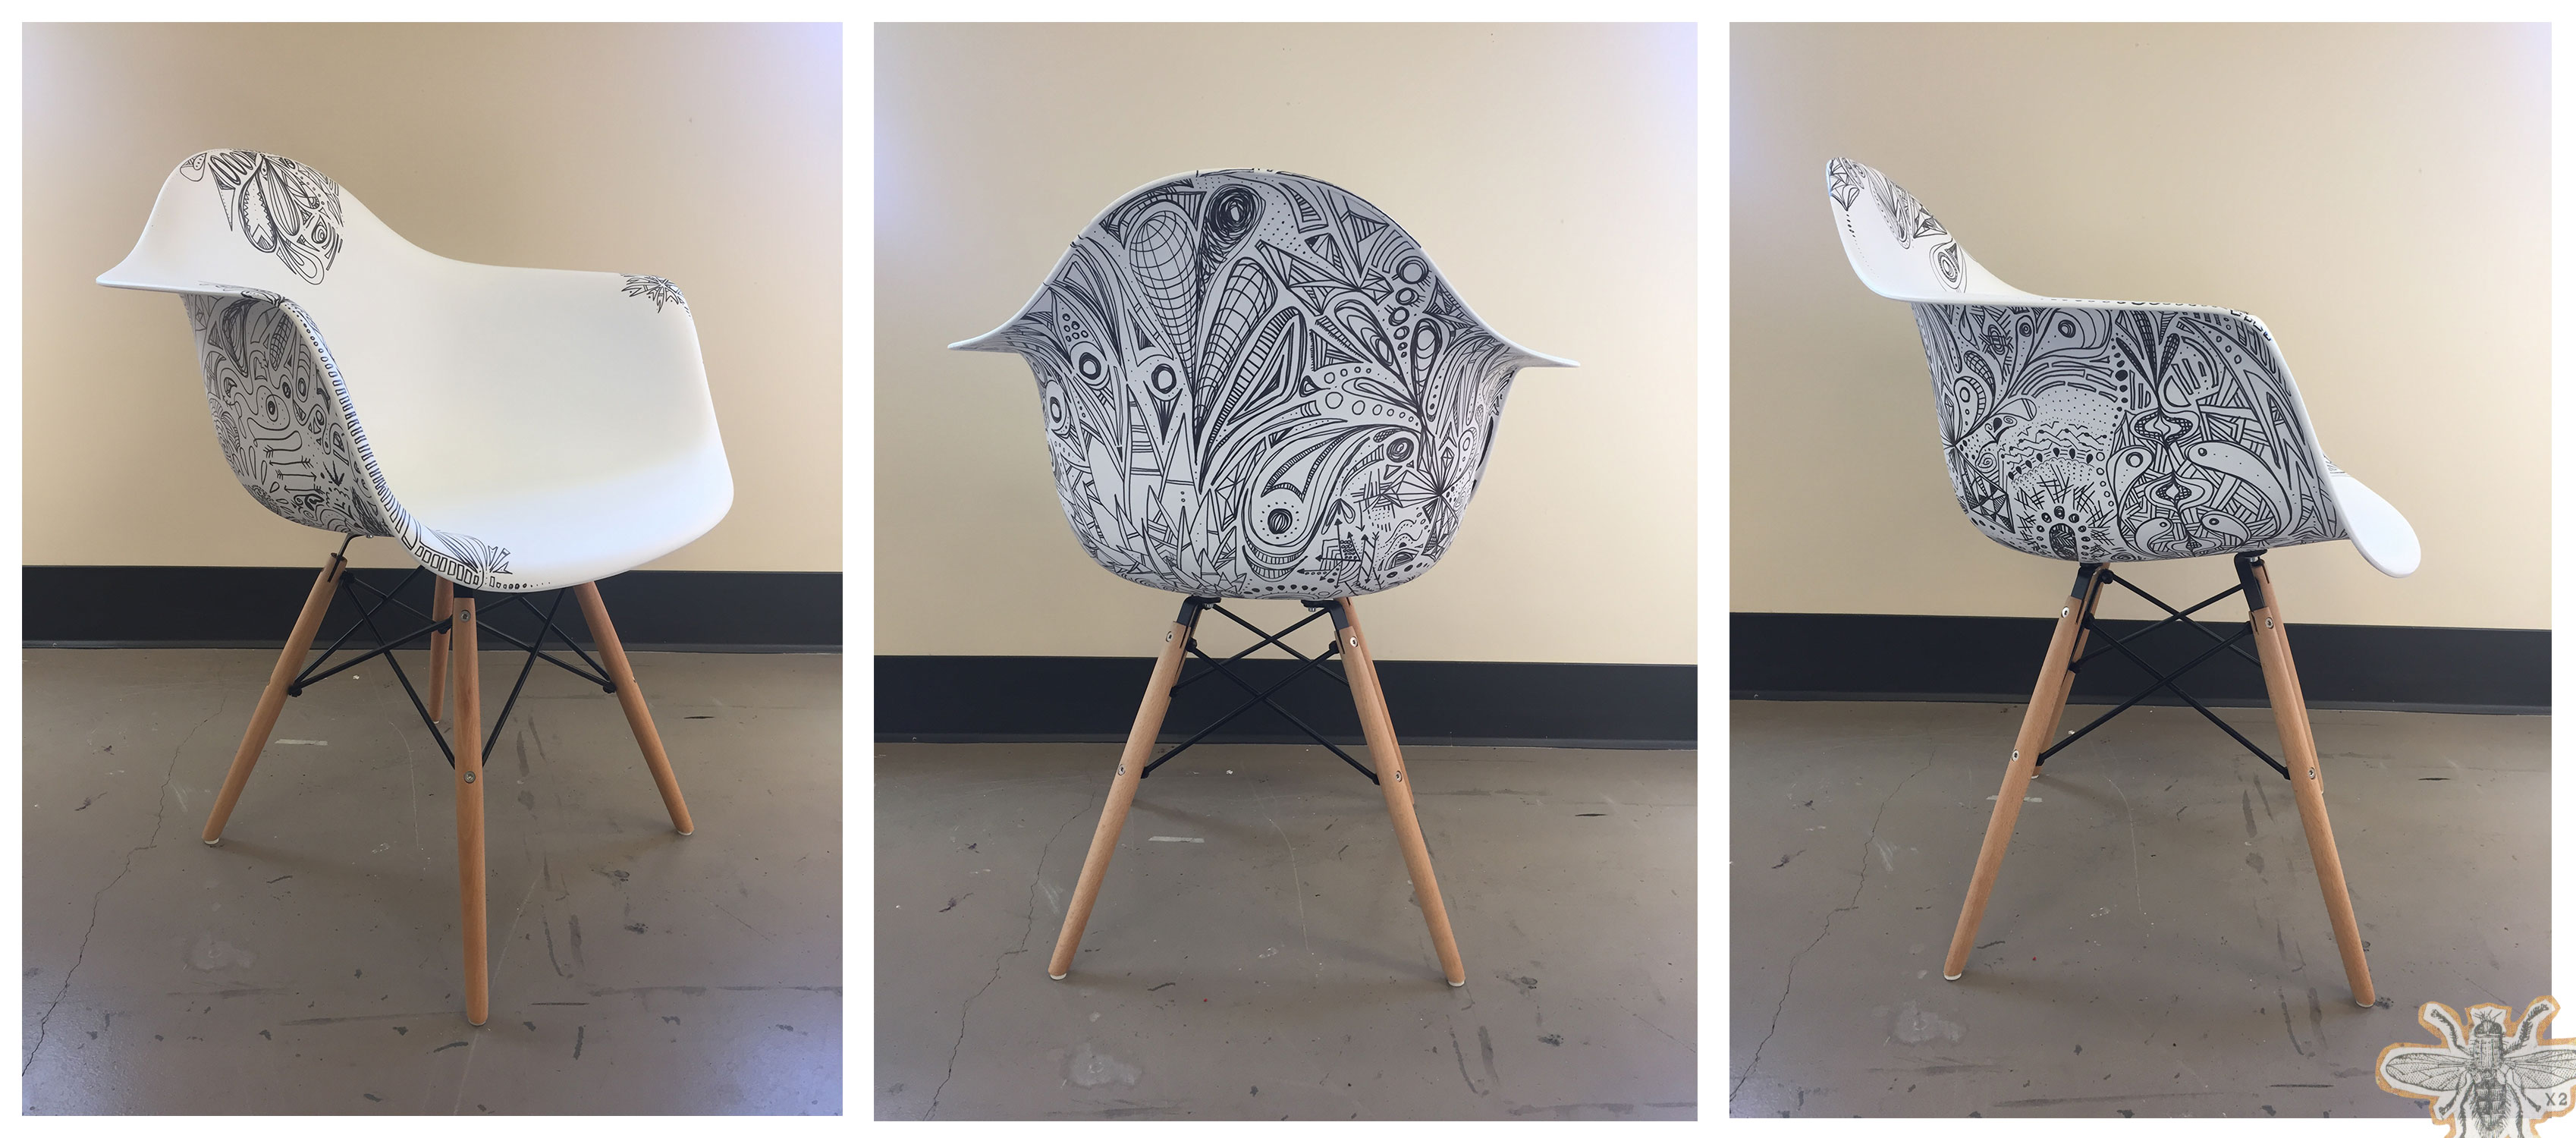 A modern white chair that has been decorated with Sharpie doodles.